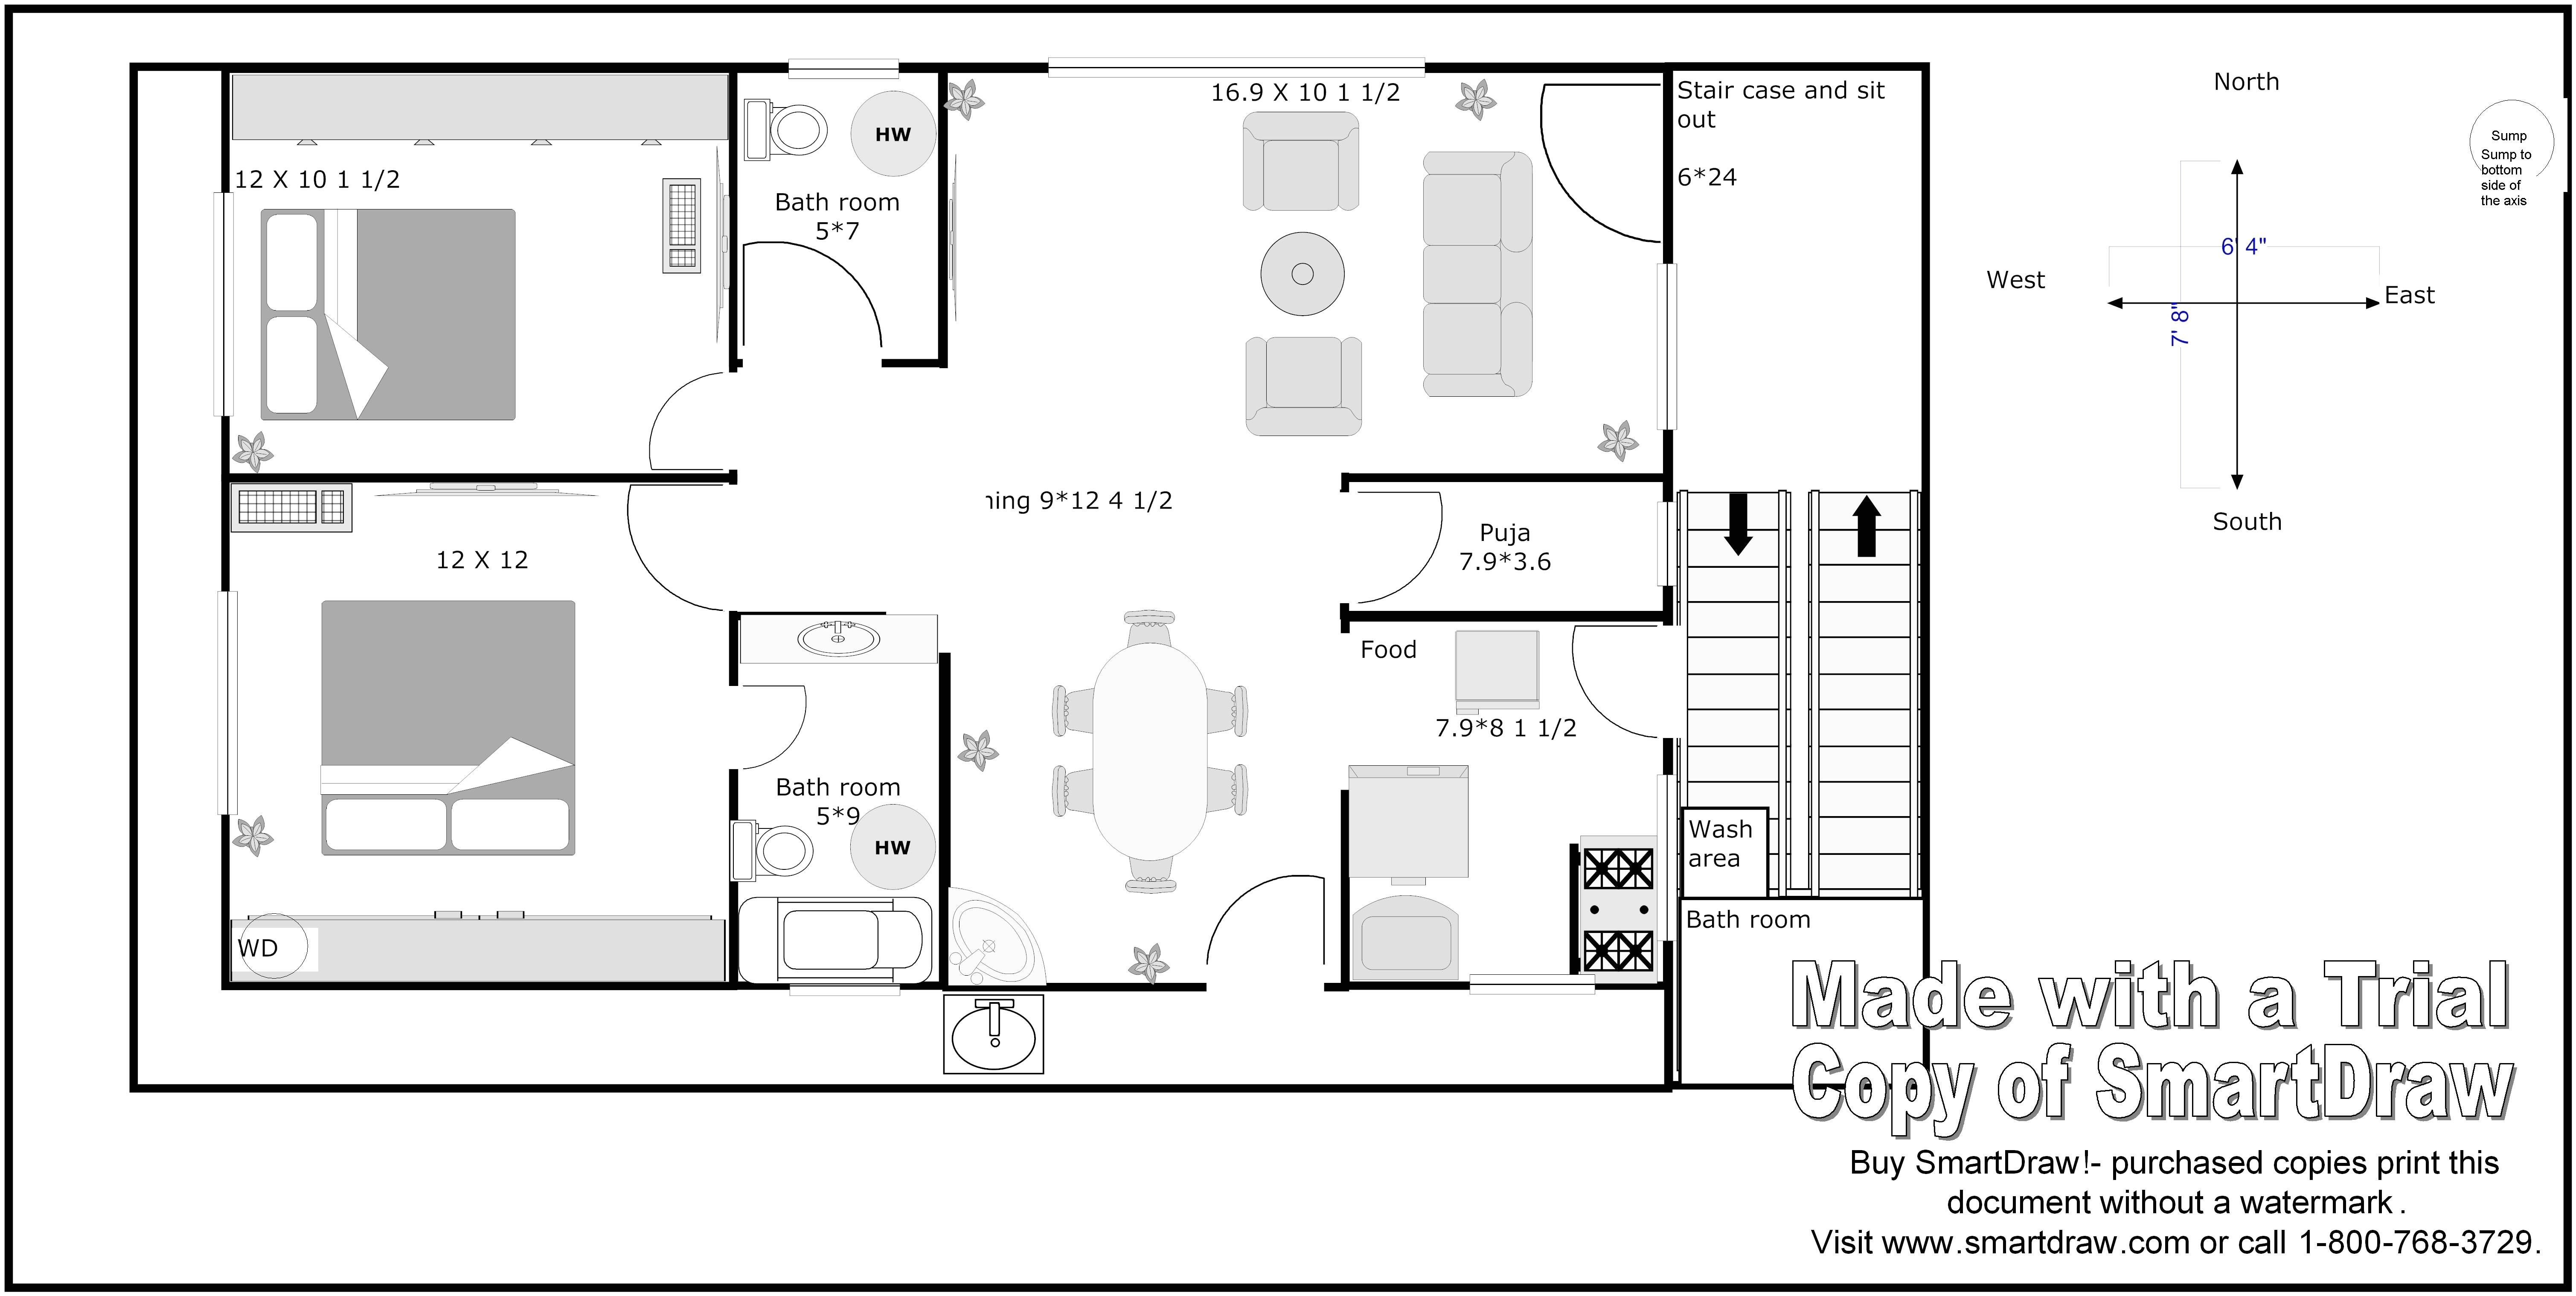 Captivating 150k House Plans Pictures Best Image Dicocco Us South Facing House Indian House Plans House Plans With Pictures